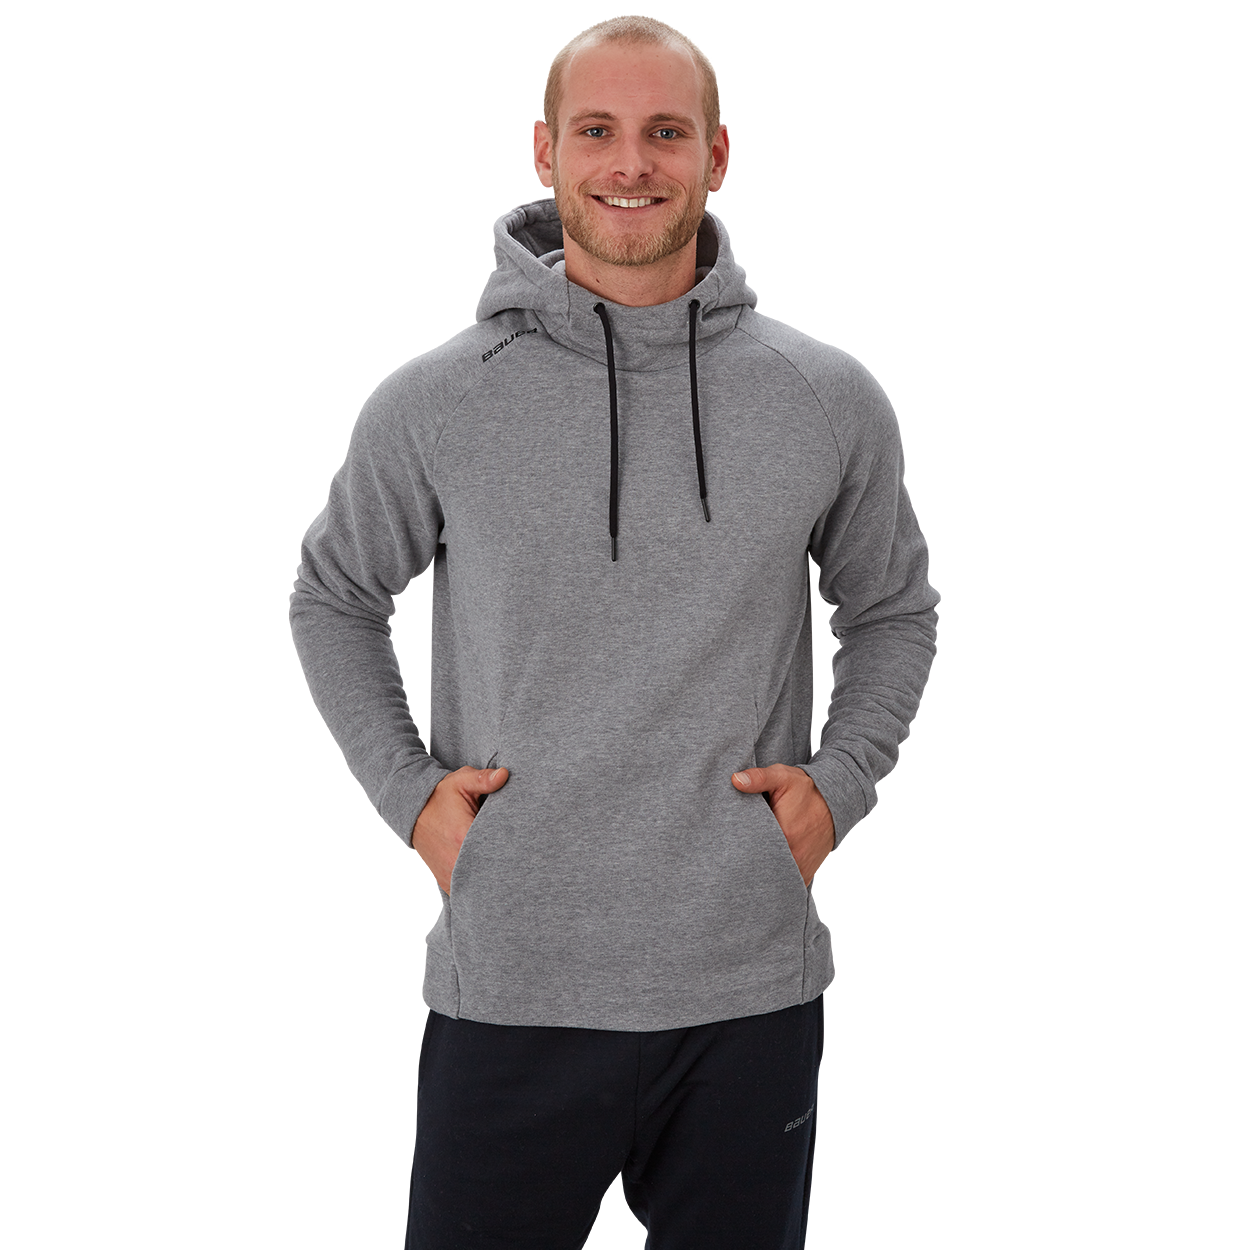 Bauer Perfect Hoodie,Grau,Medium